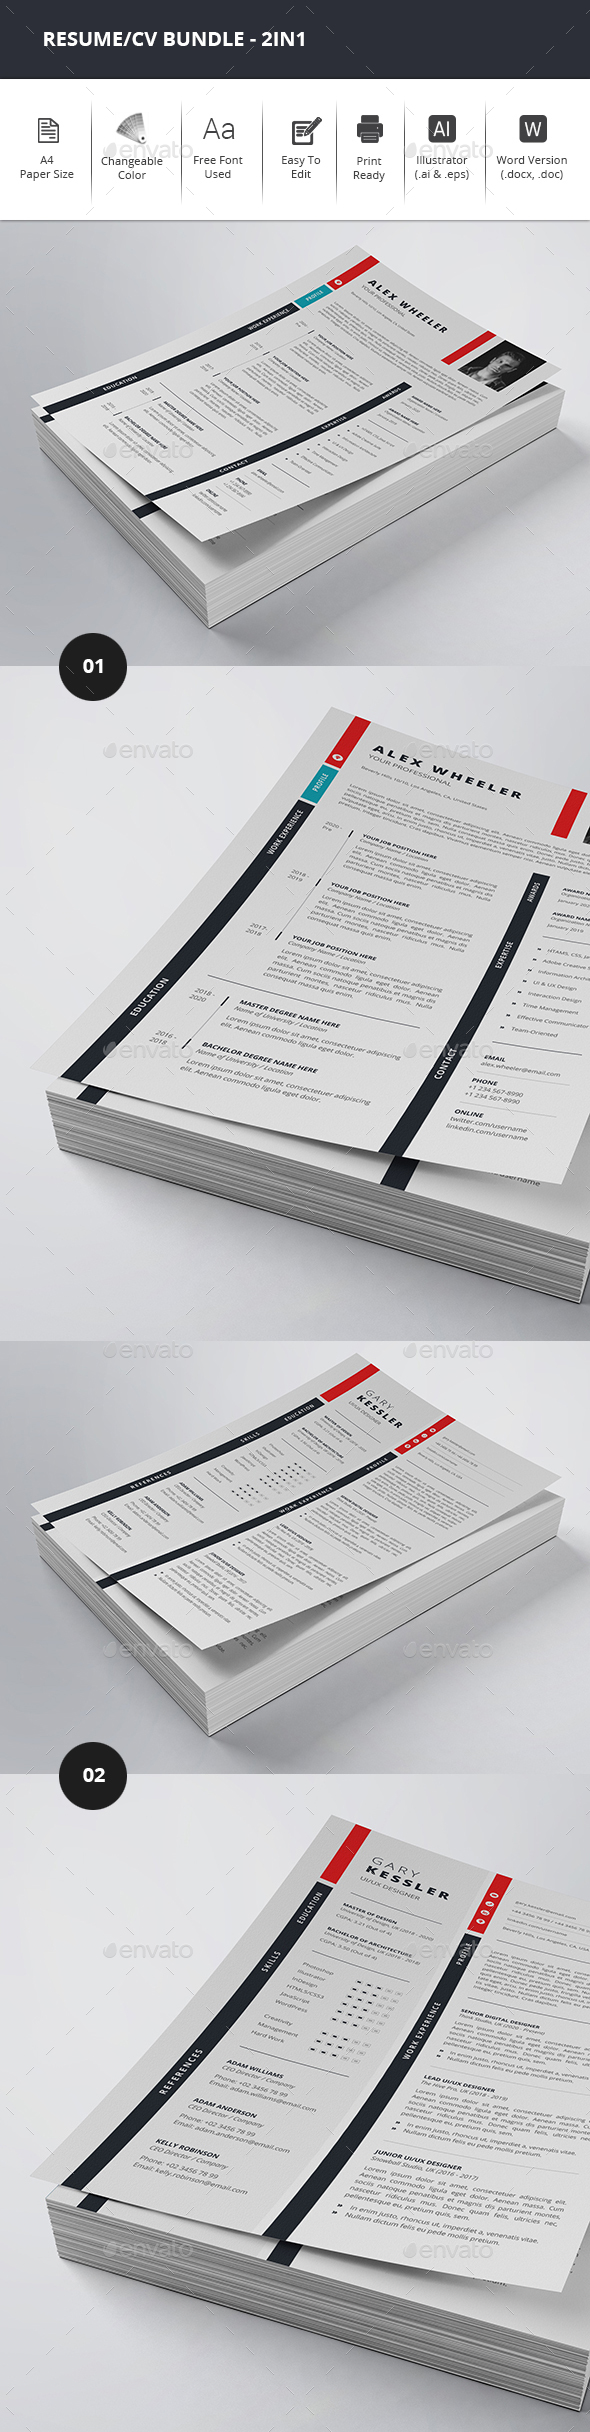 Resume/CV Bundle - 2in1